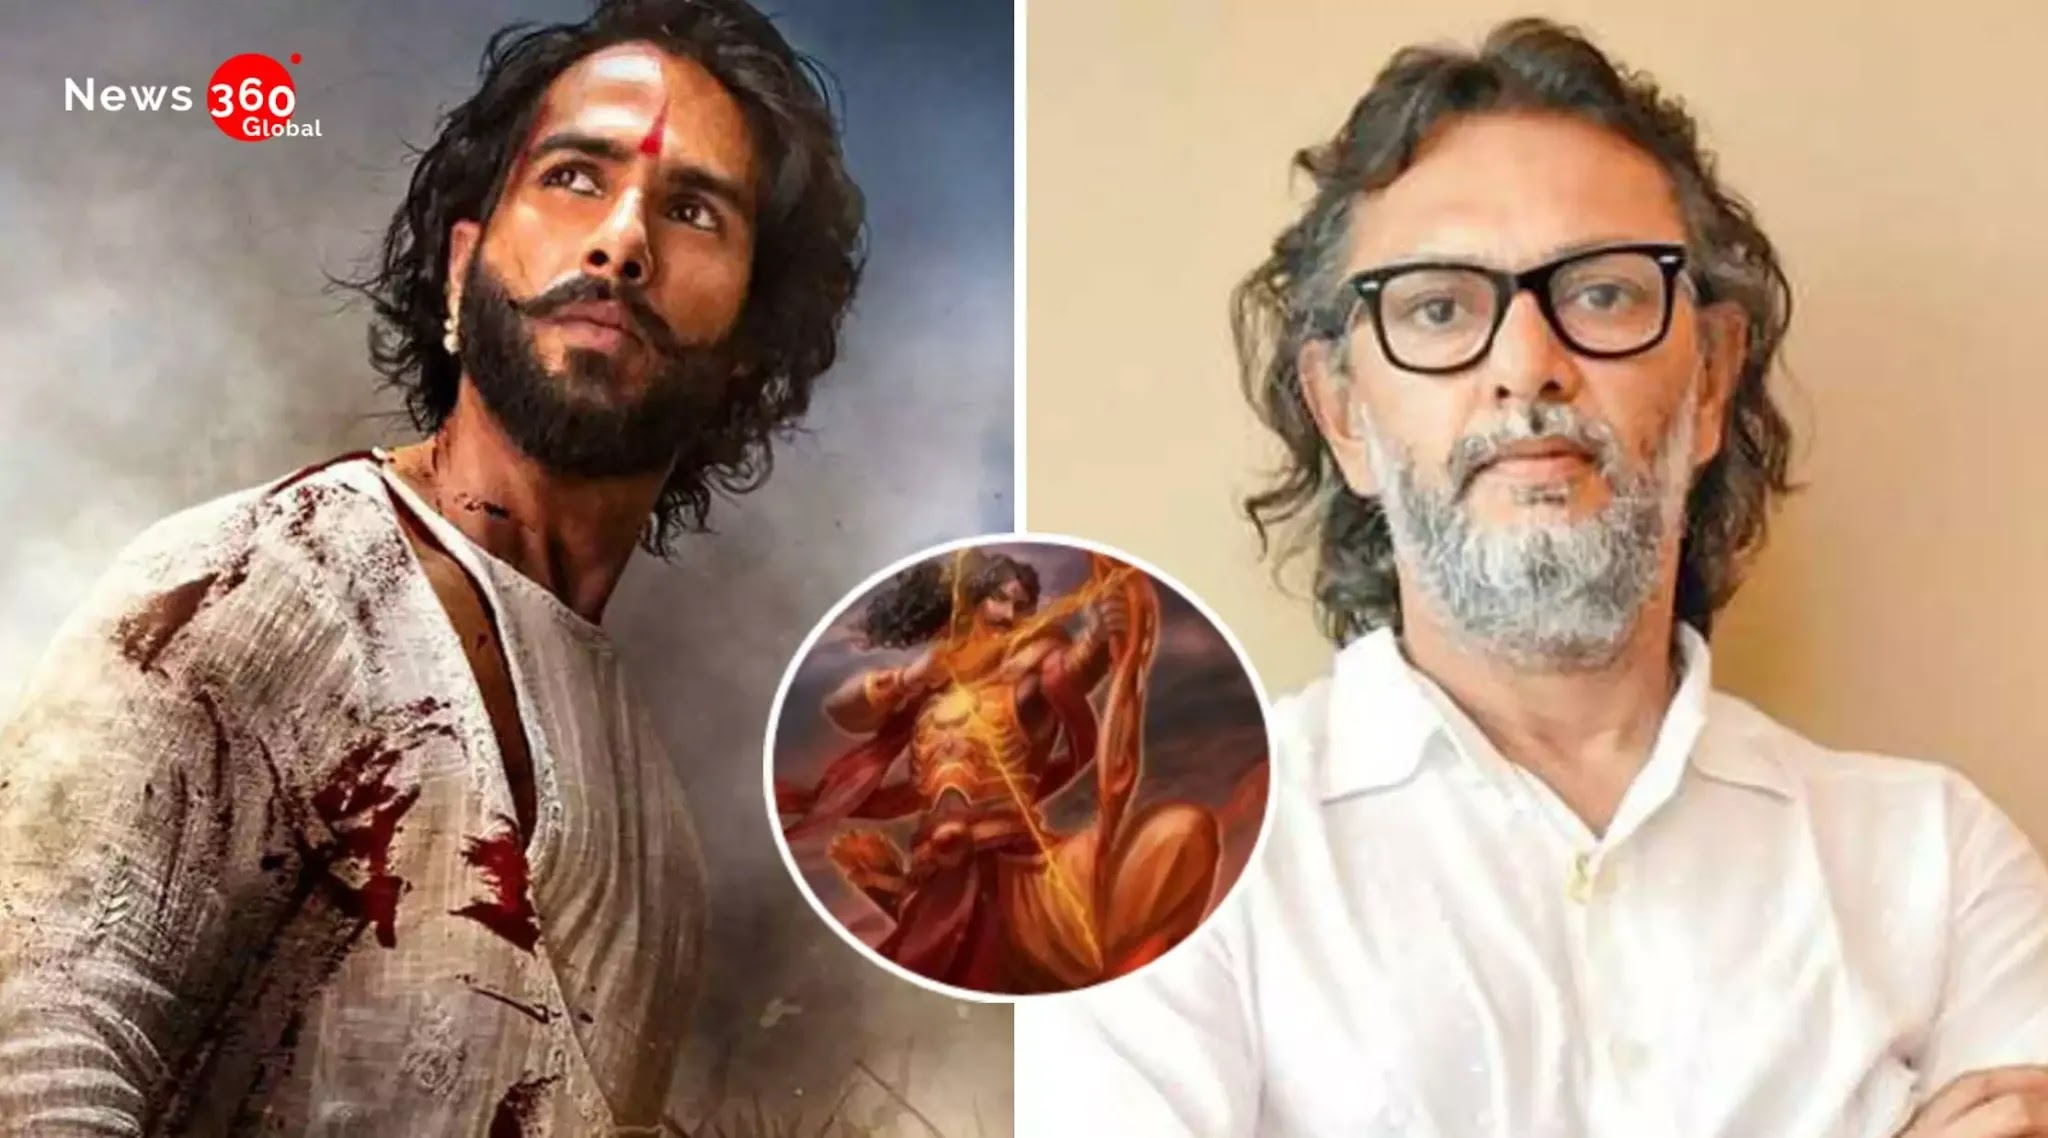 Shahid Kapoor to Play a Role of Karna in Mahabharat, Check details